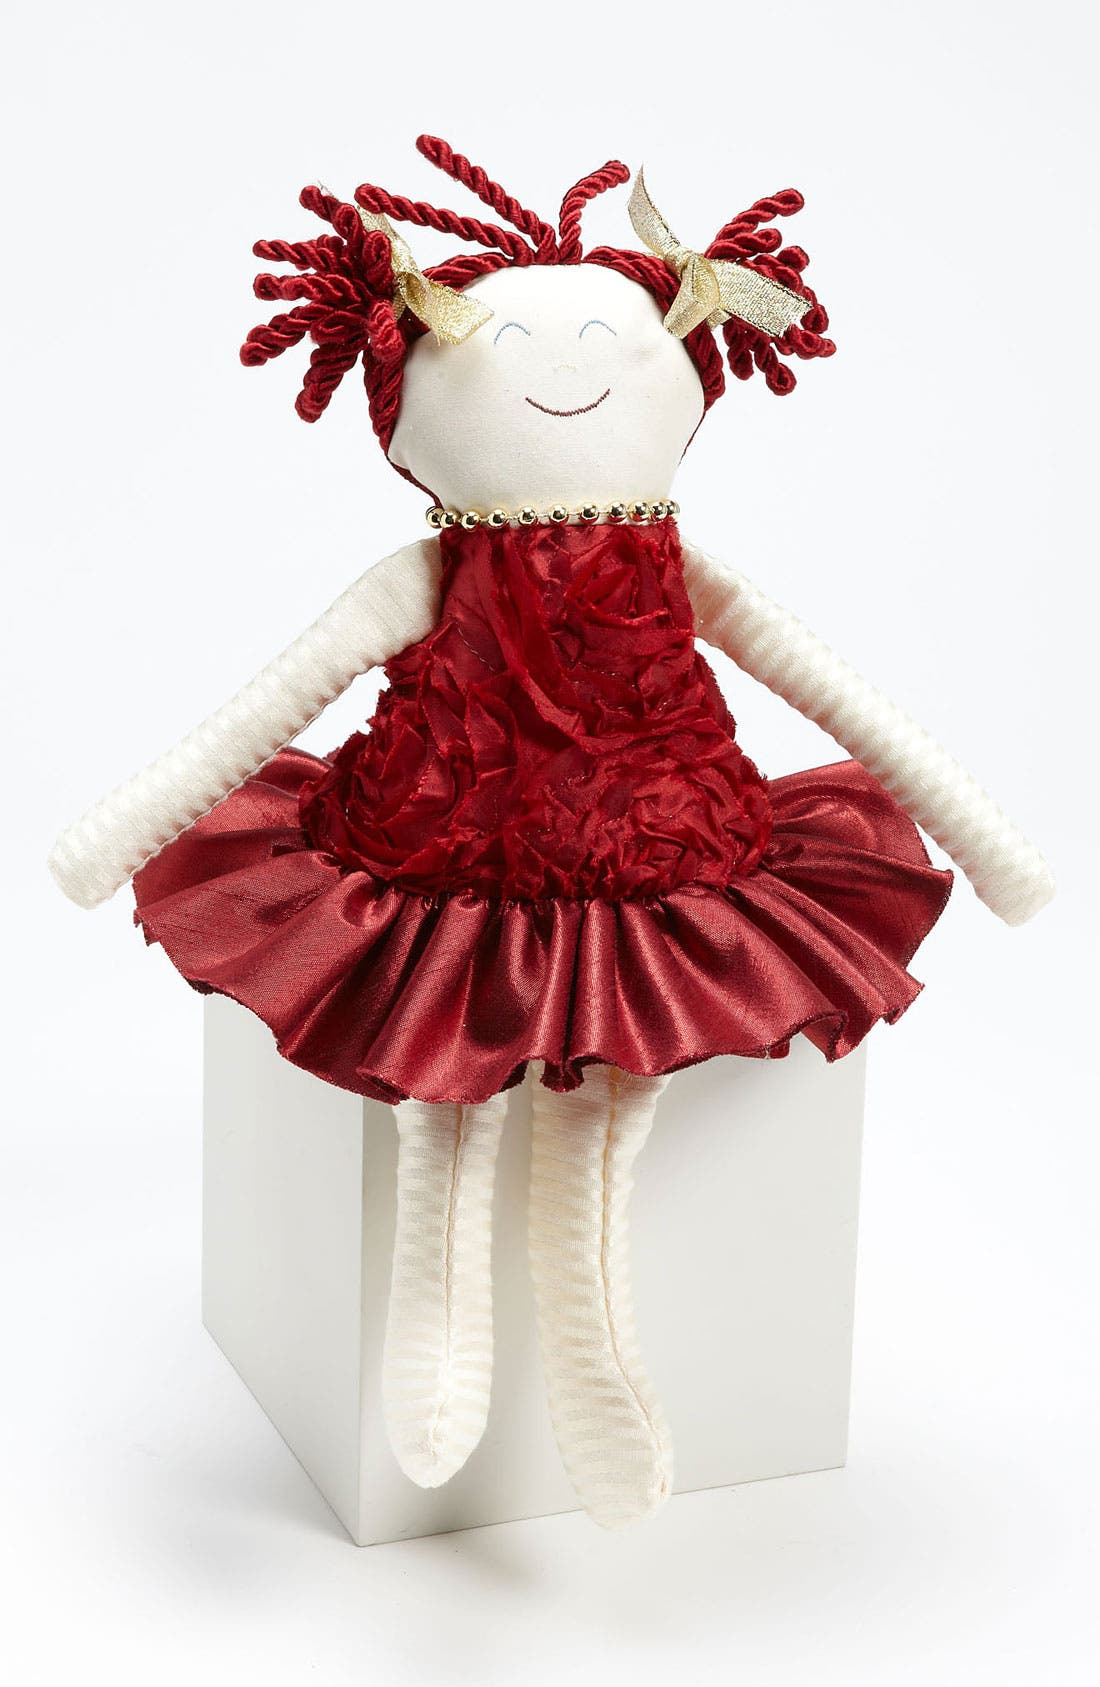 Alternate Image 1 Selected - Woof & Poof 'Red Rose Party Girl' Decoration